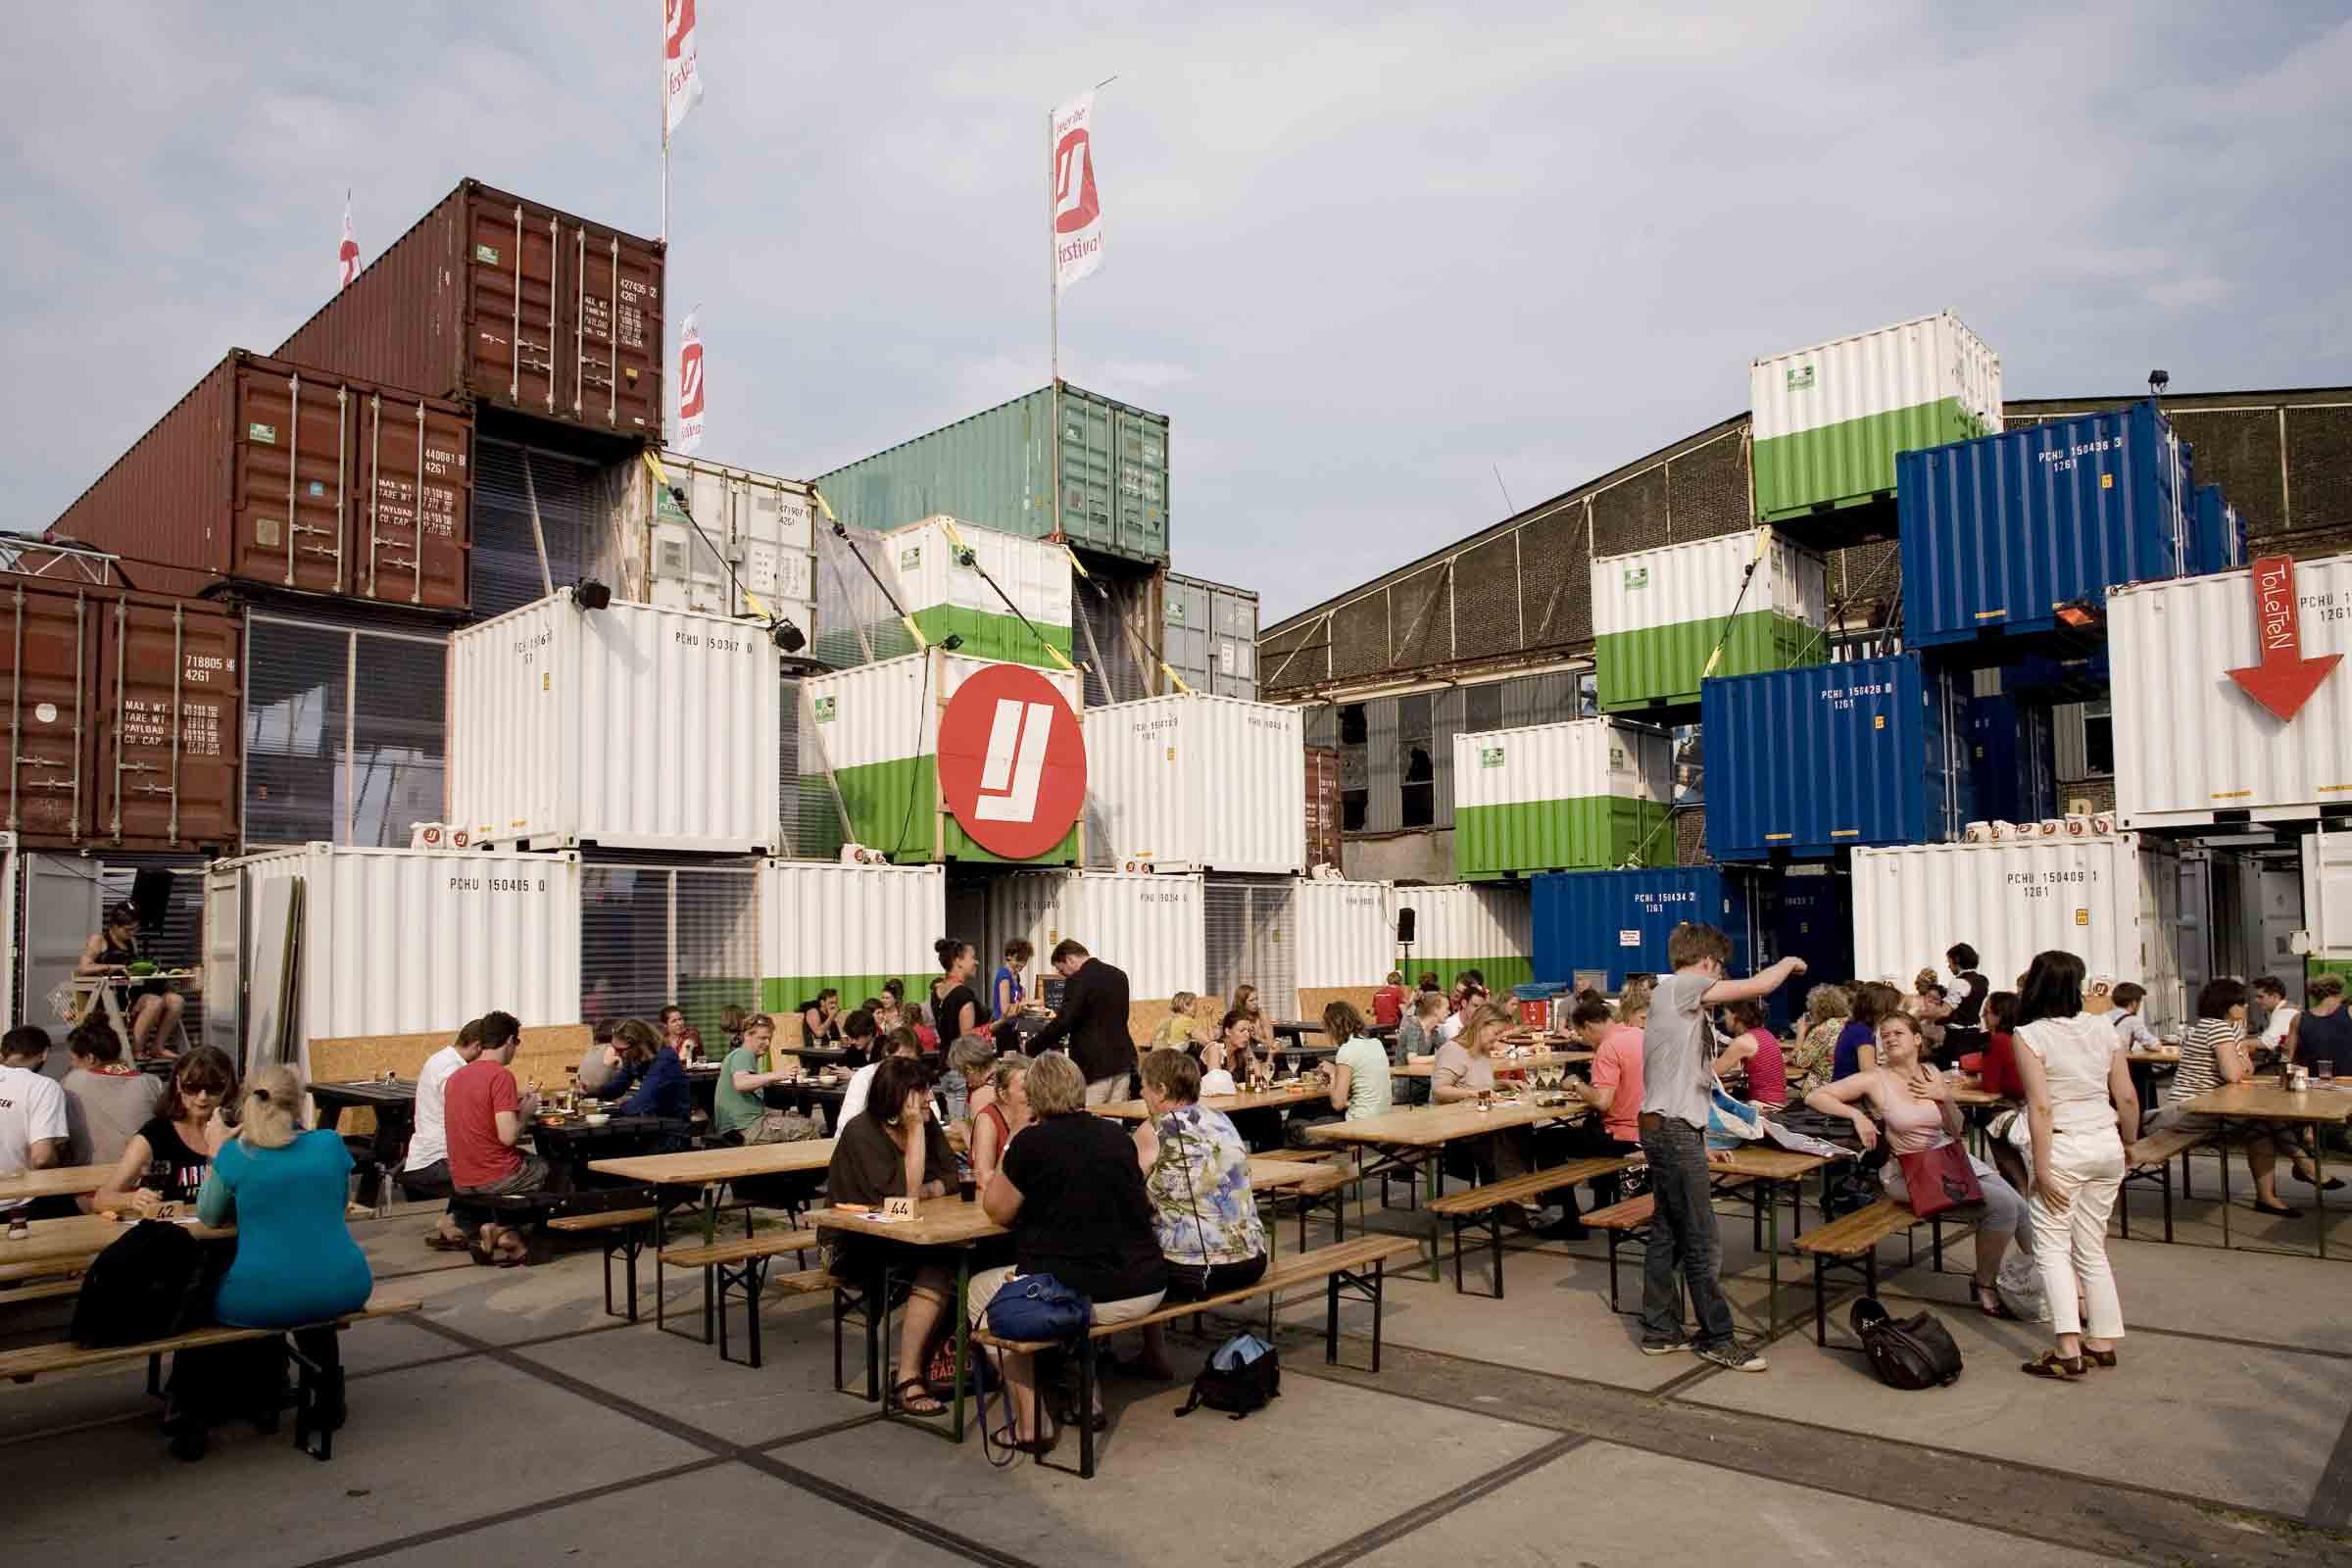 BETA office for architecture and the city Amsterdam NDSM temporary shipping container city exterior